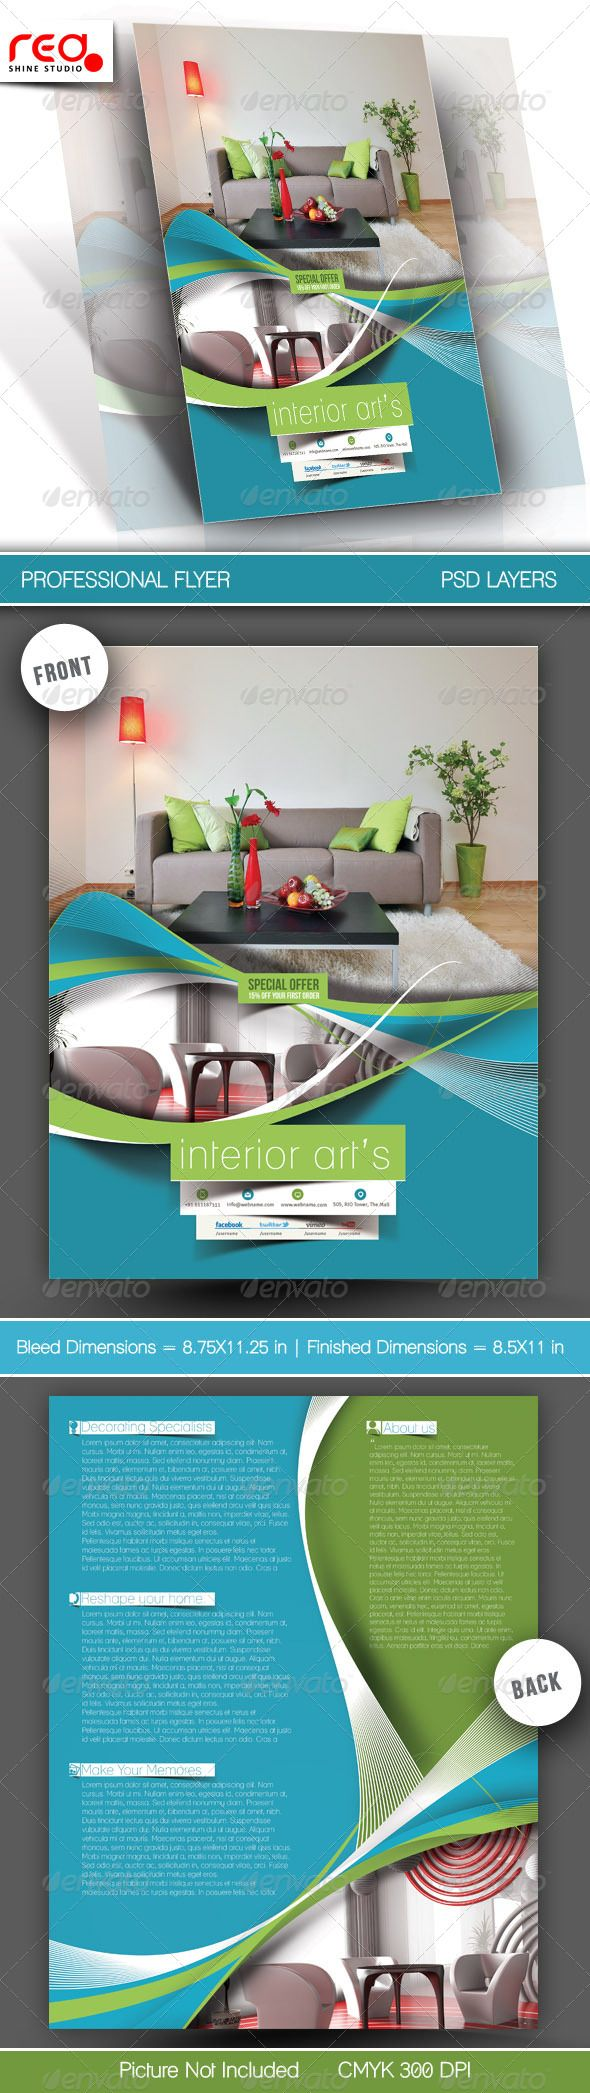 Apartment Brochure Design Impressive Inspiration